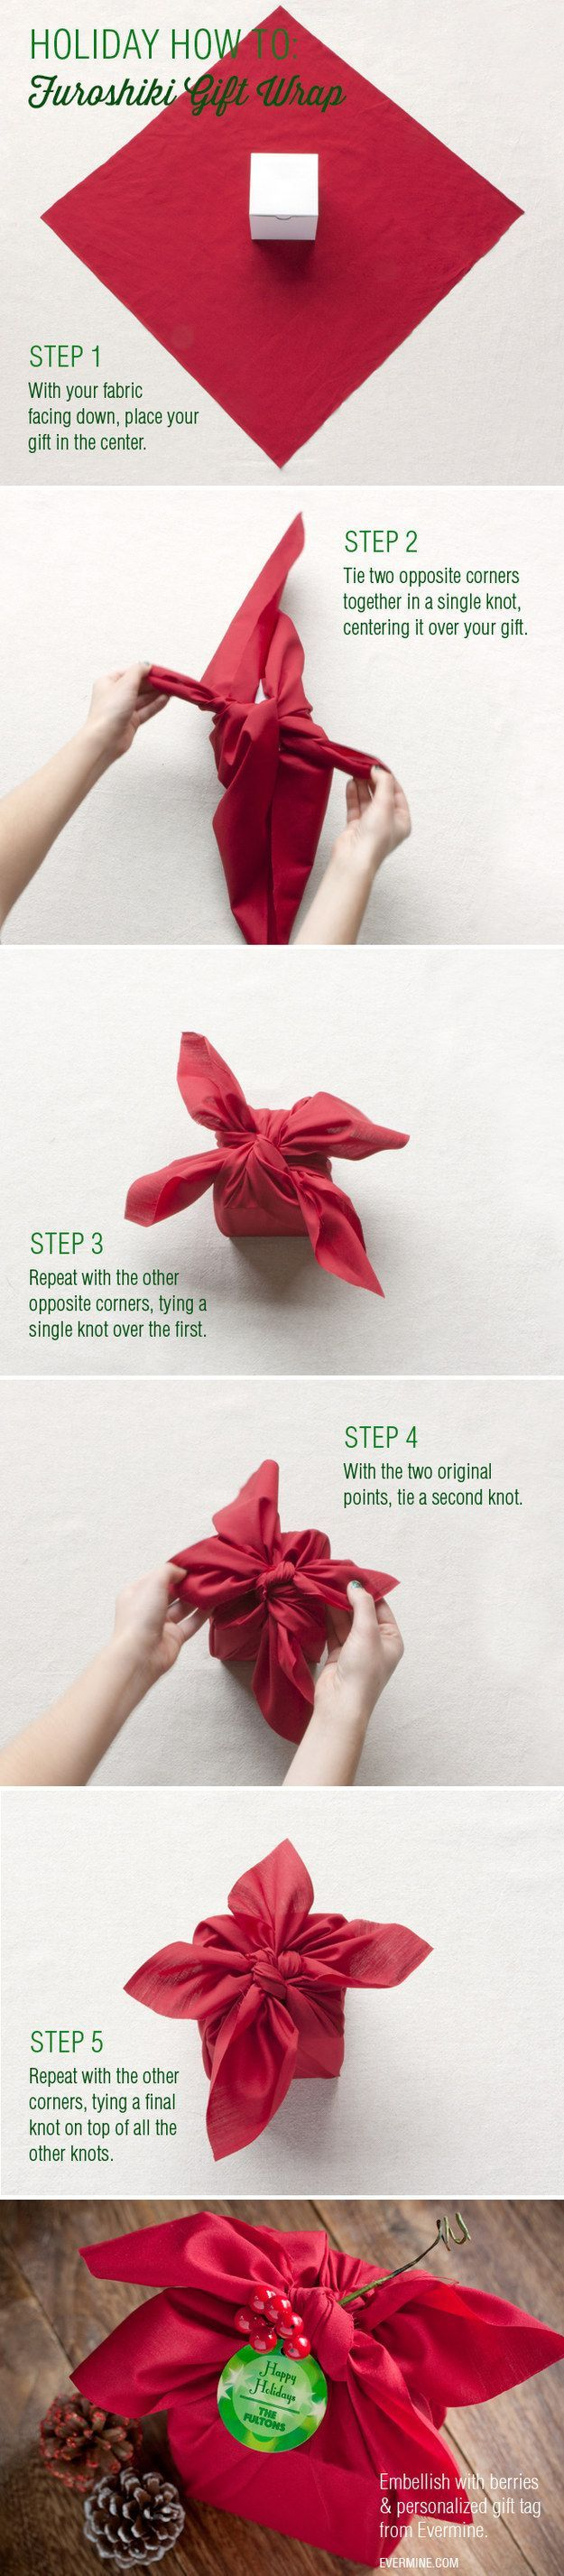 27 Clever Gift Wrapping Tricks For Lazy People | Gift Wrapping Ideas ...